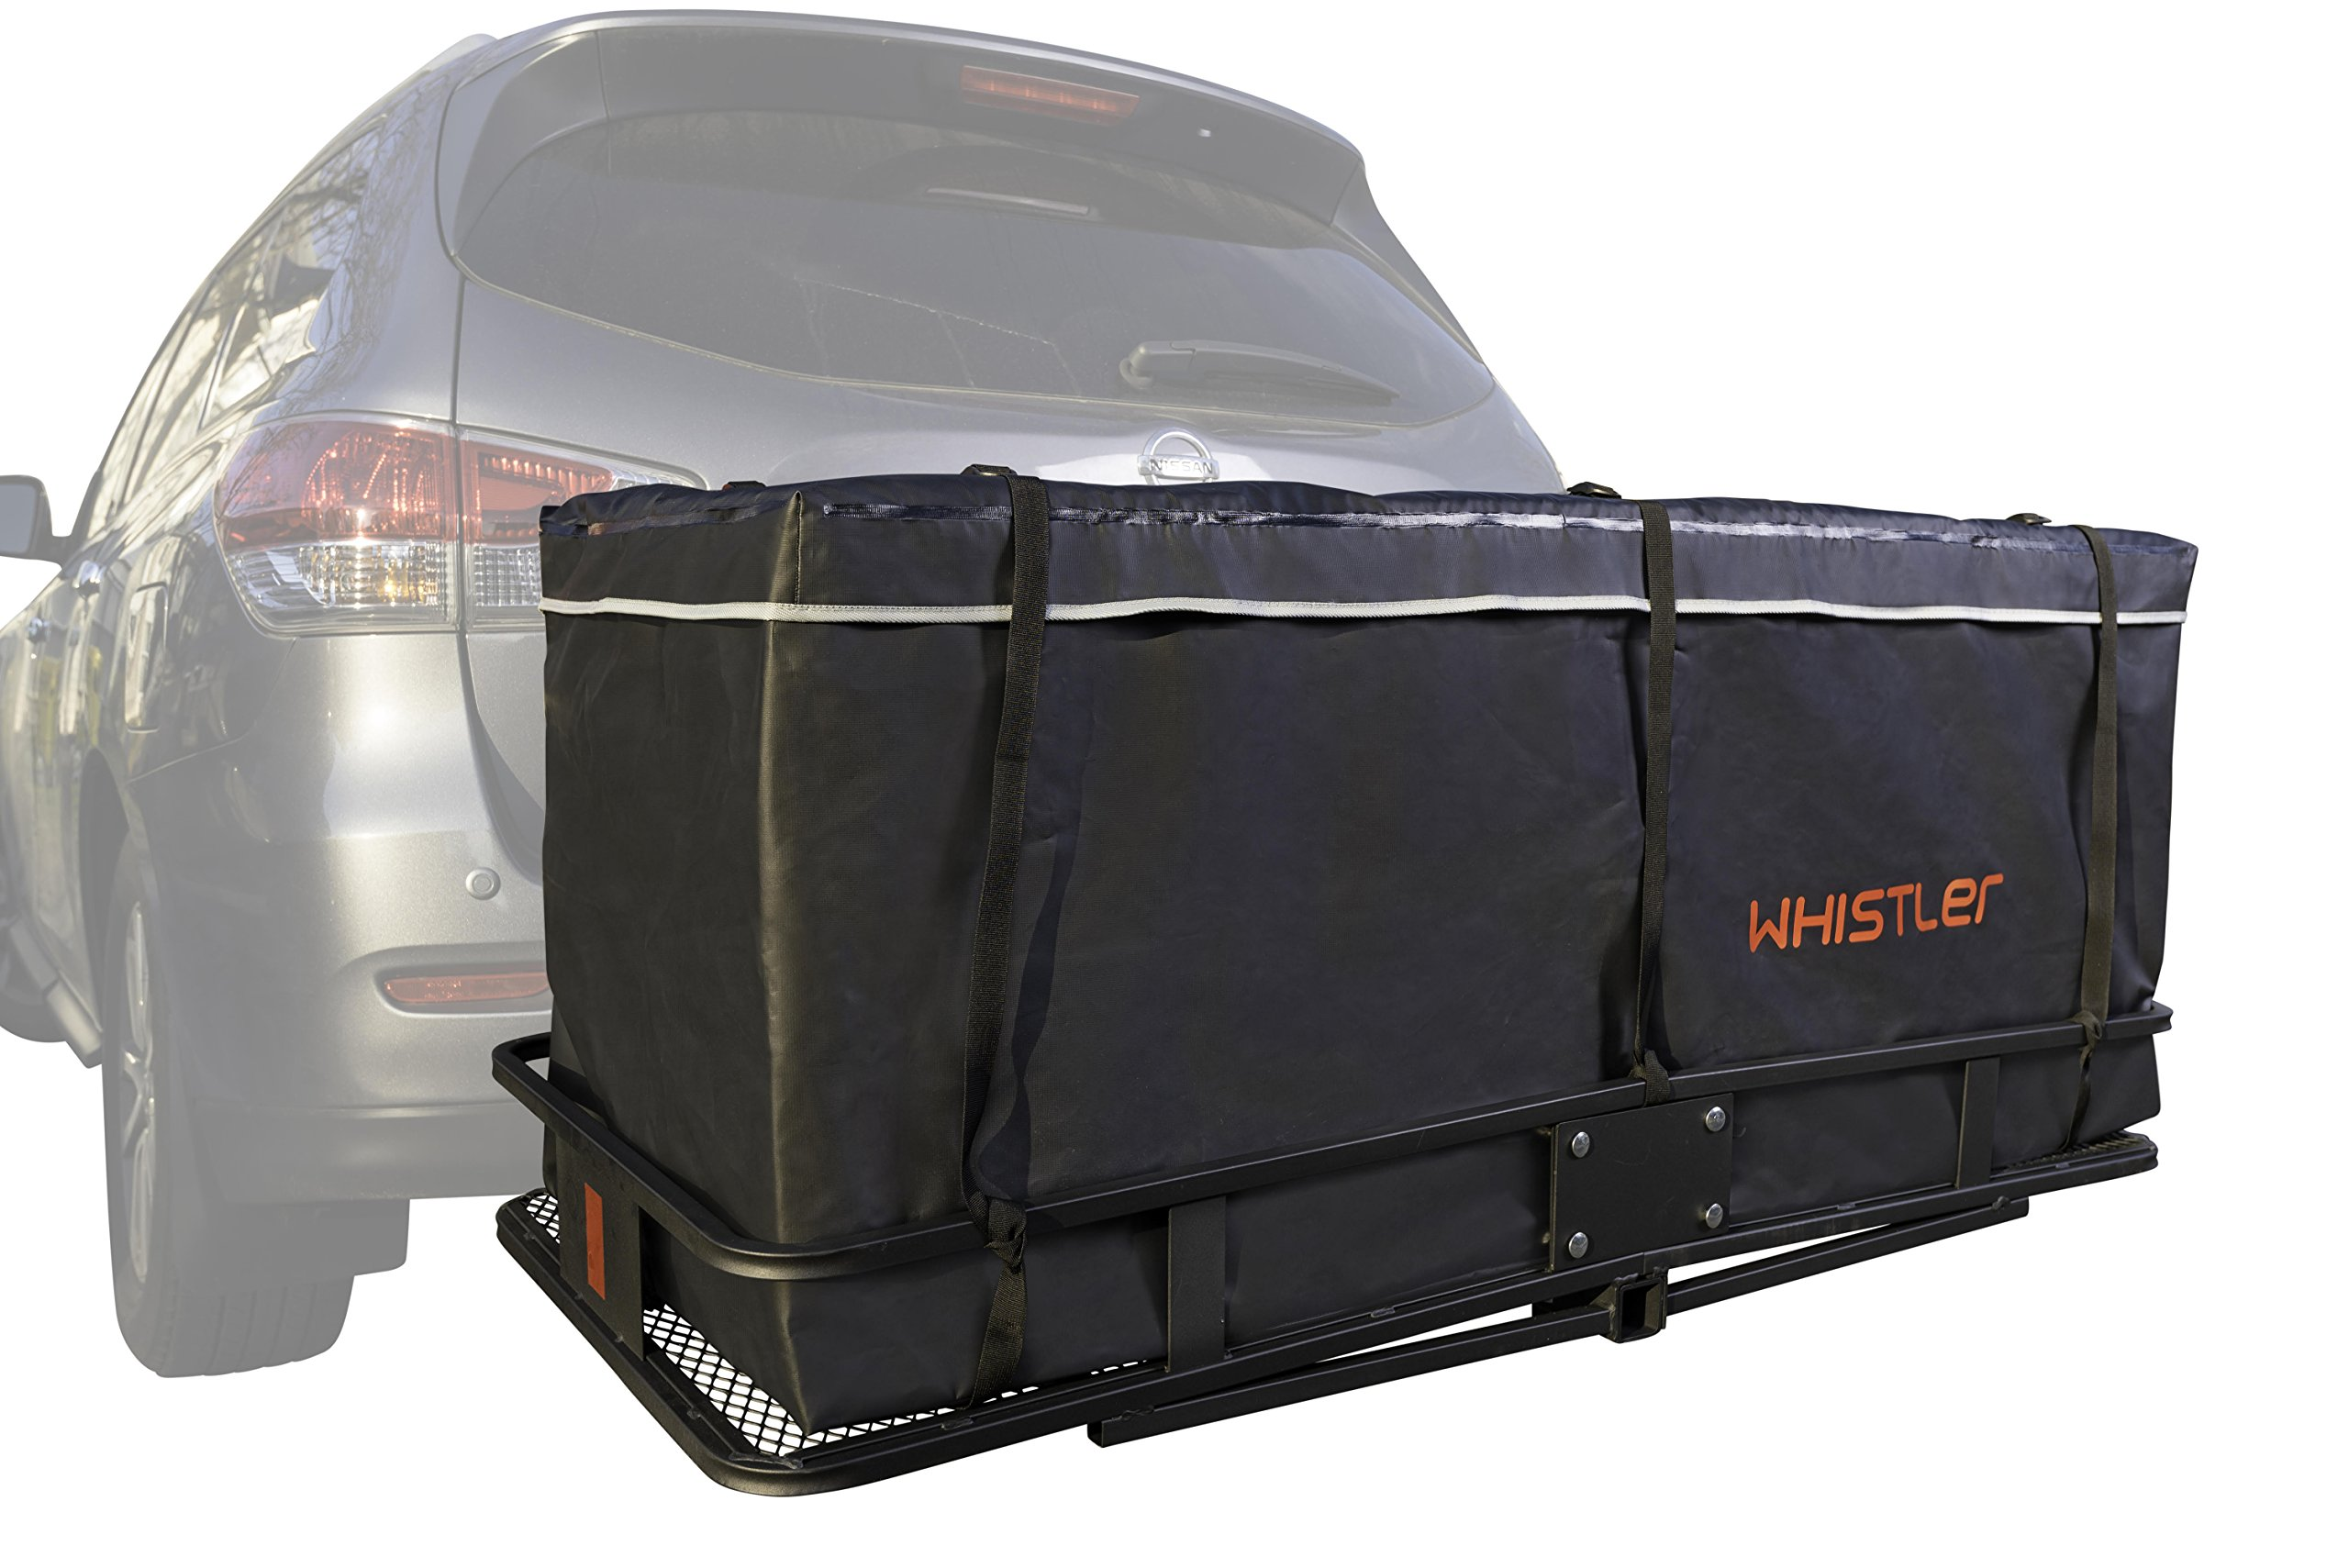 Hitch bag - 100% Waterproof Large Hitch Tray Cargo carrier bag 59'' x 24'' x 24'' (20 Cu Ft) + Storage Bag by Whistler